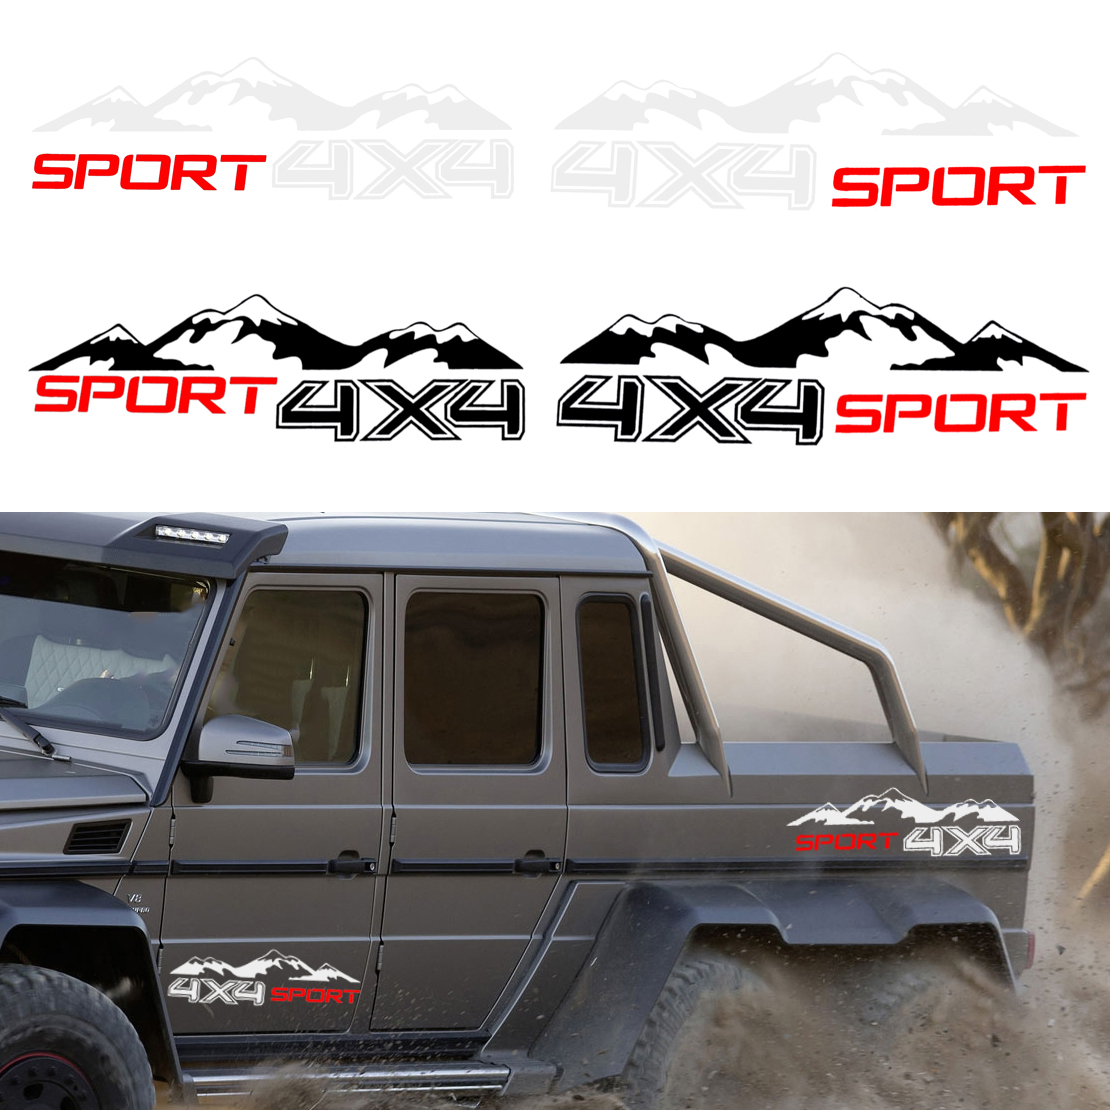 DWCX 2Pcs DIY Graphic Vinyl <font><b>4X4</b></font> Mountain Car <font><b>Stickers</b></font> Body Decor Decal Waterproof For <font><b>Off</b></font> <font><b>Road</b></font> Truck SUV Pickup image